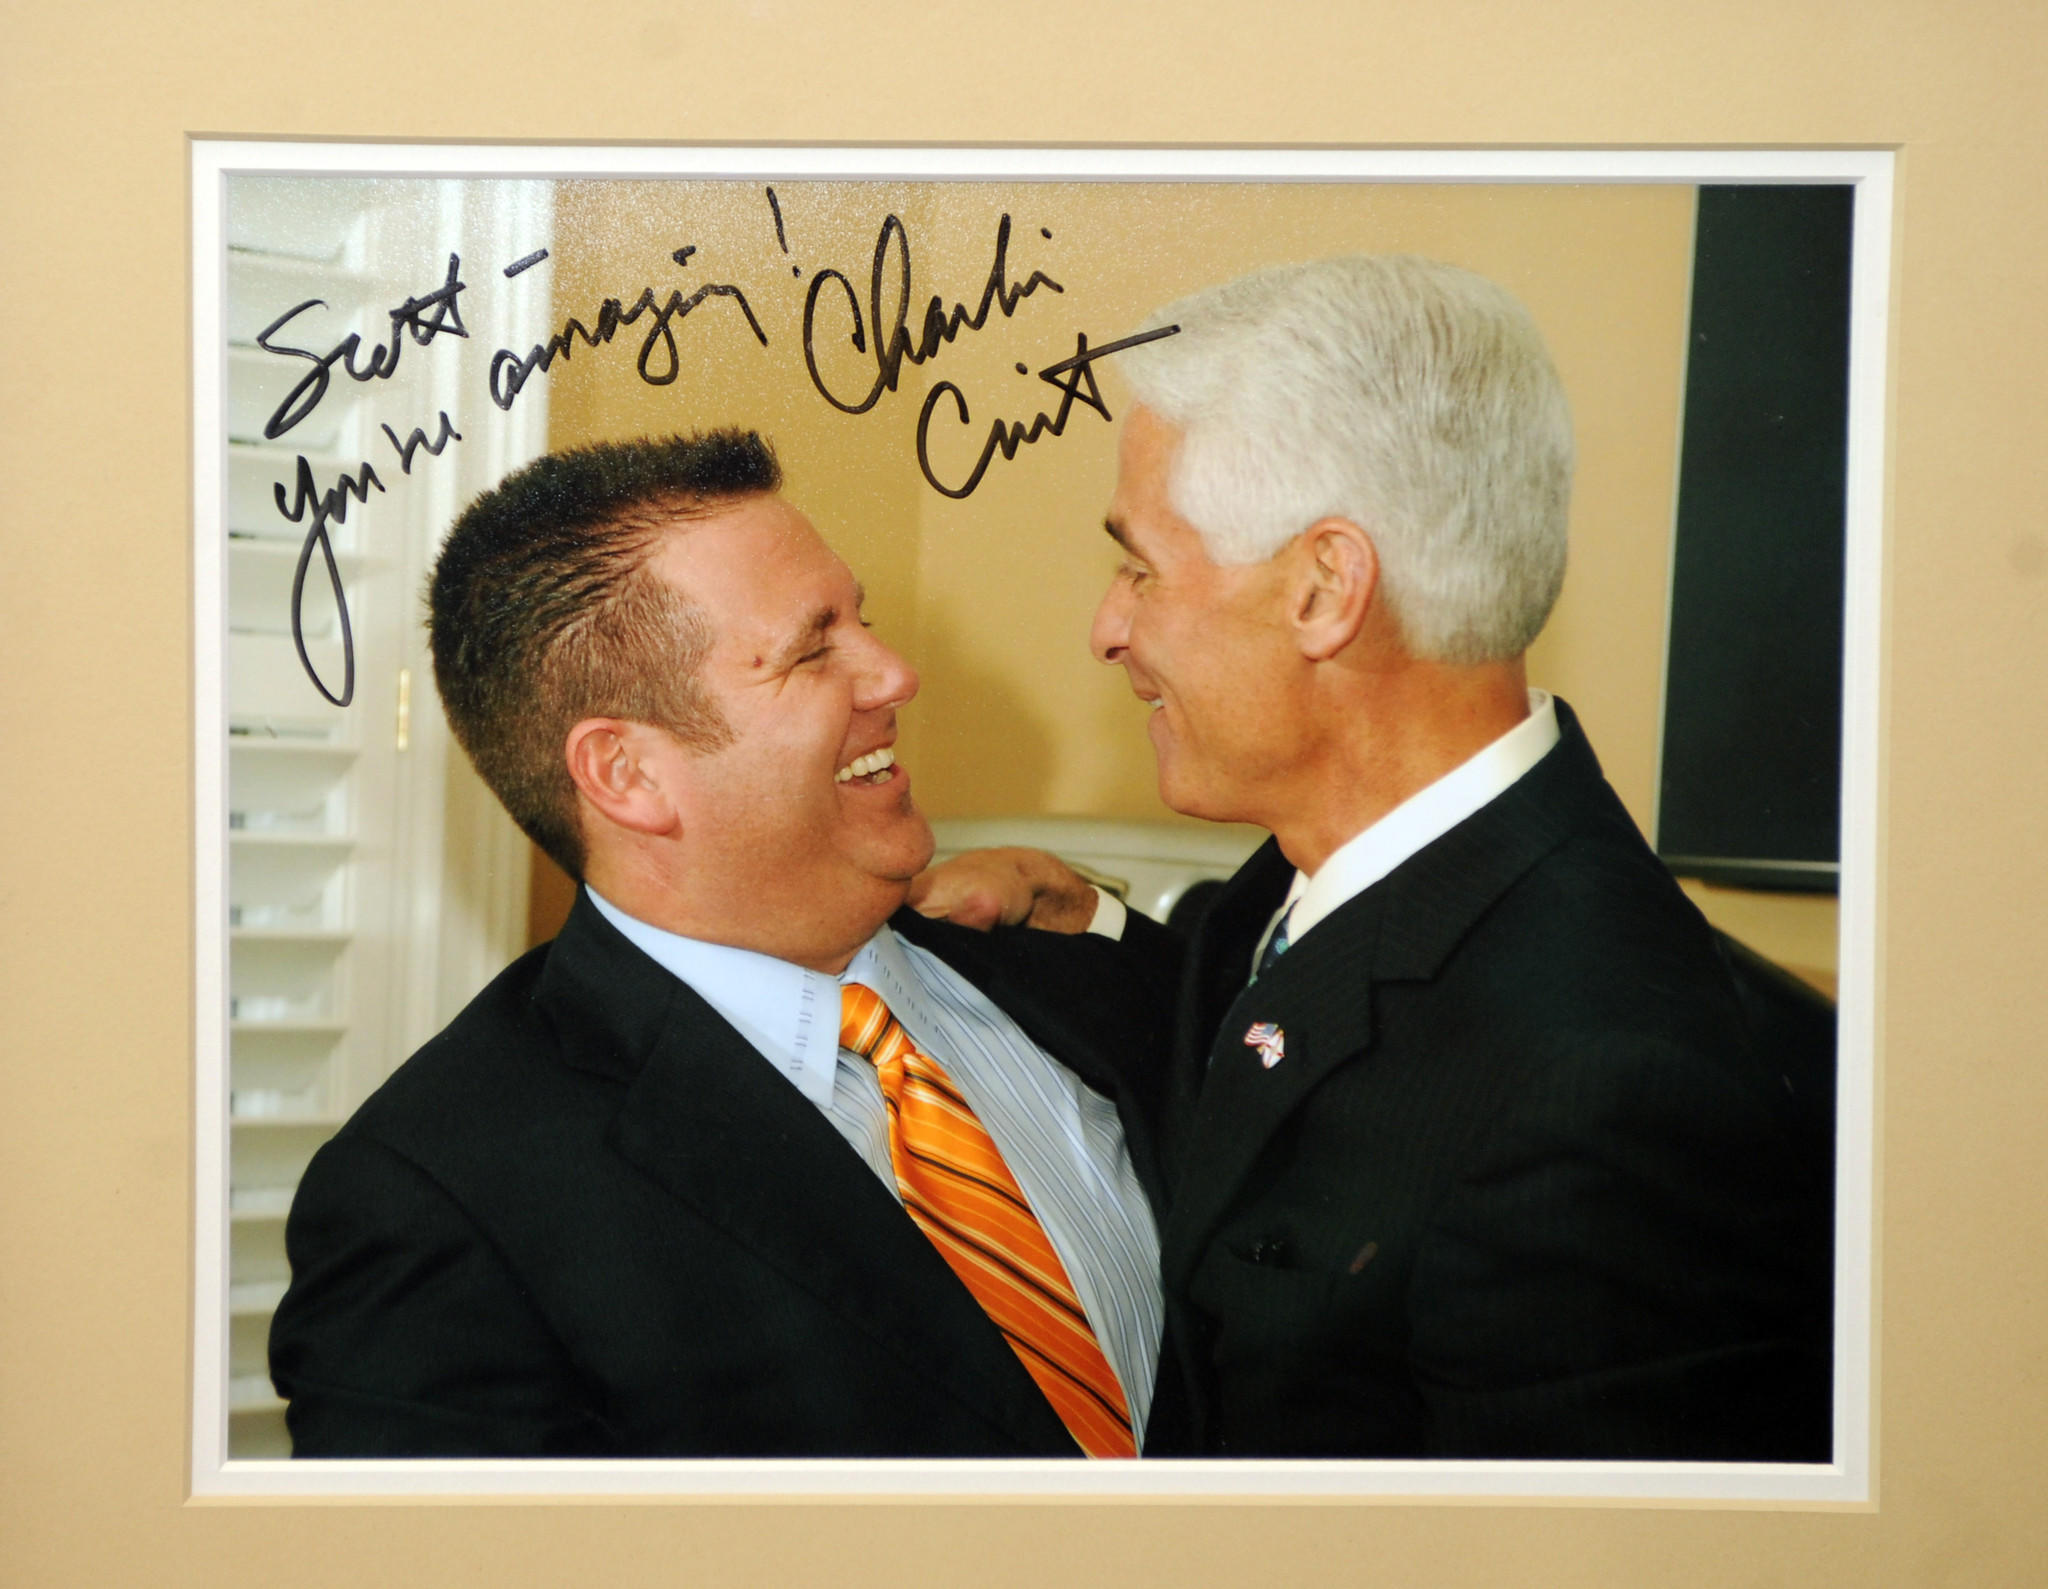 A photo of Governor Charlie Crist and Scott Rothstein in Rothstein' office in Ft. Lauderdale Carline Jean, SunSentinel